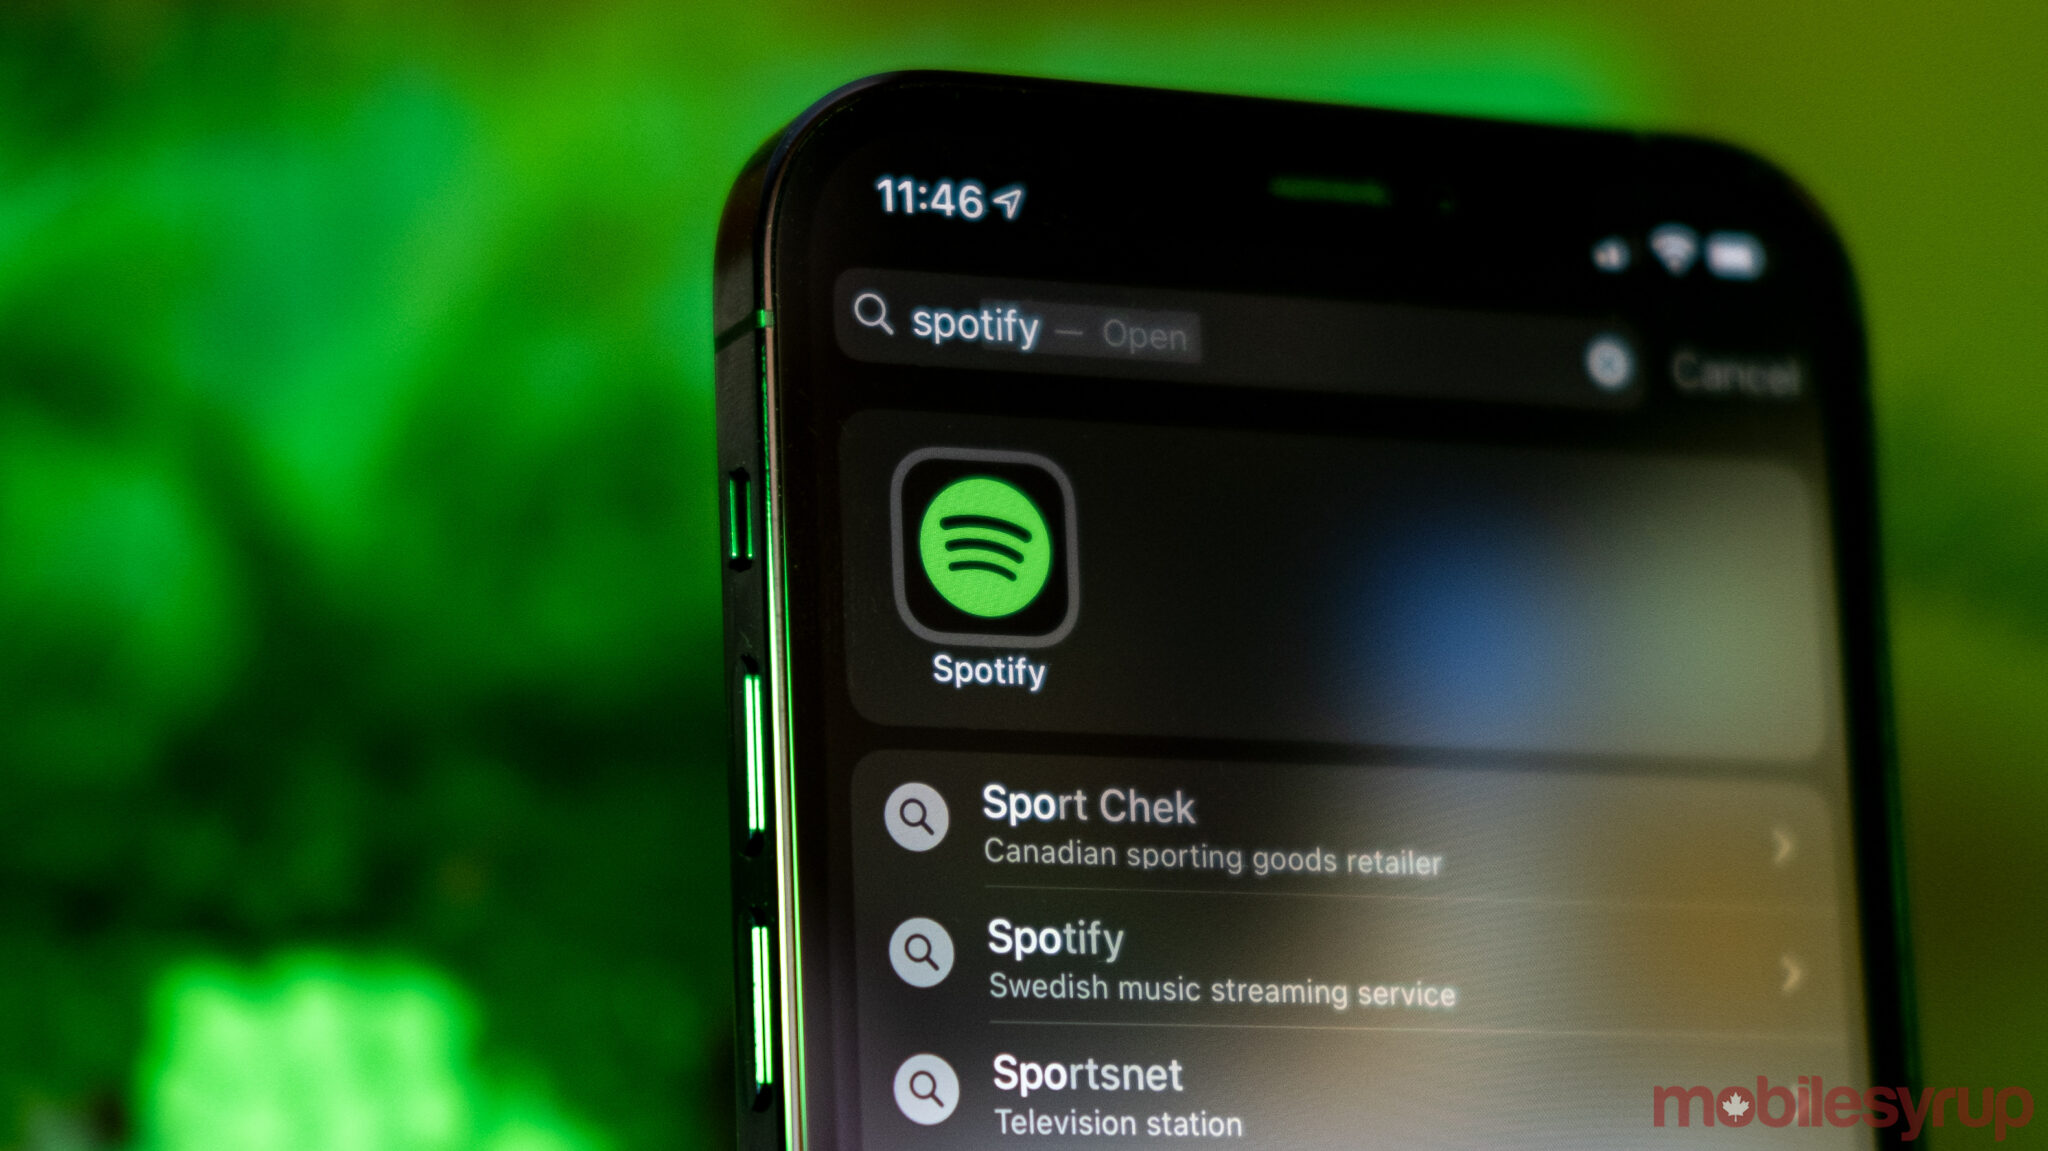 Spotify jumps to 158 million Premium subscribers